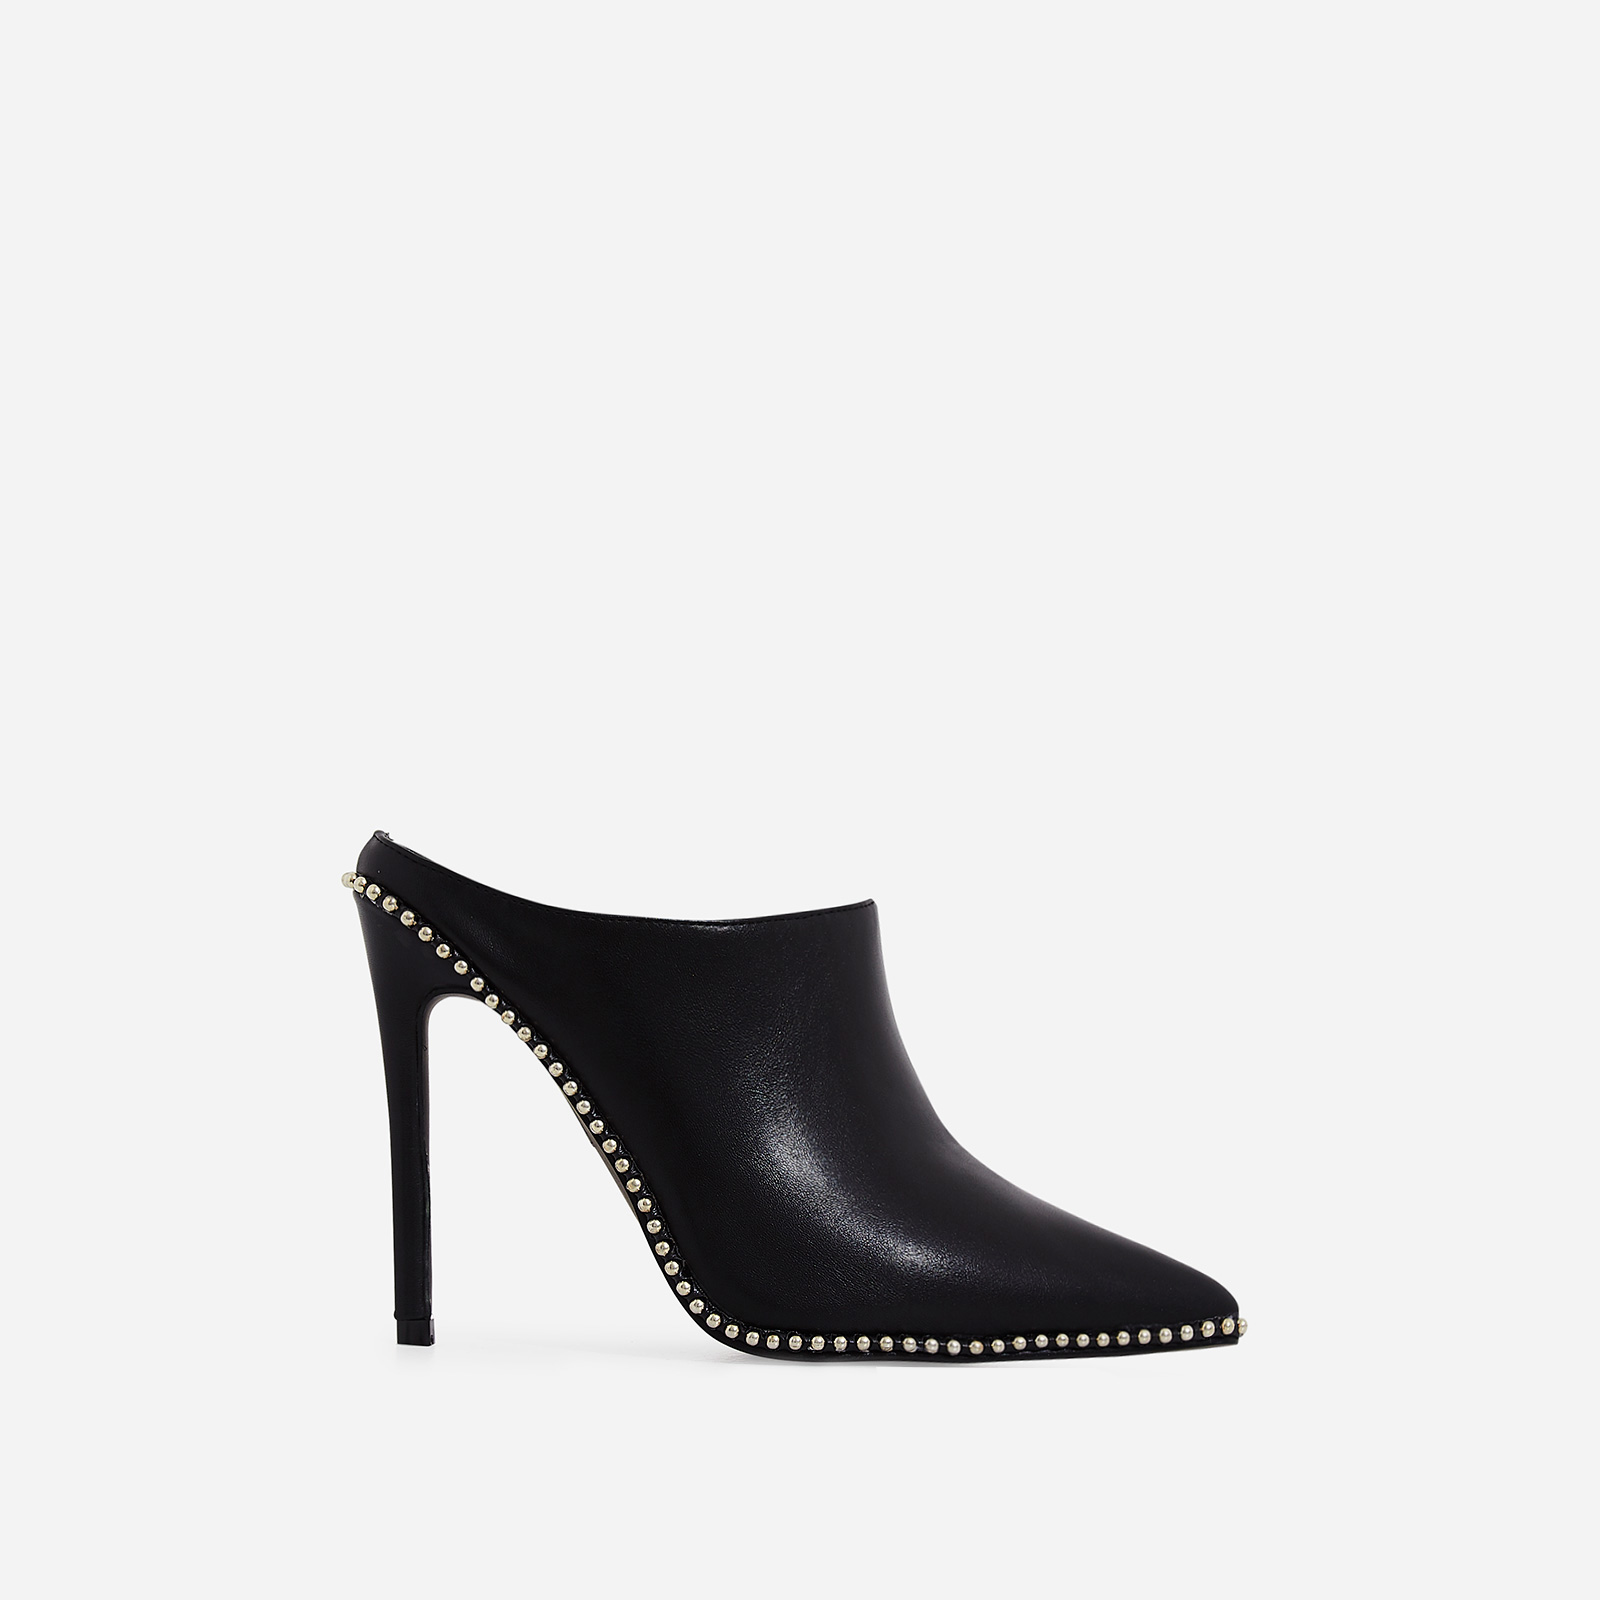 Fleur Studded Detail Heel Mule In Black Faux Leather